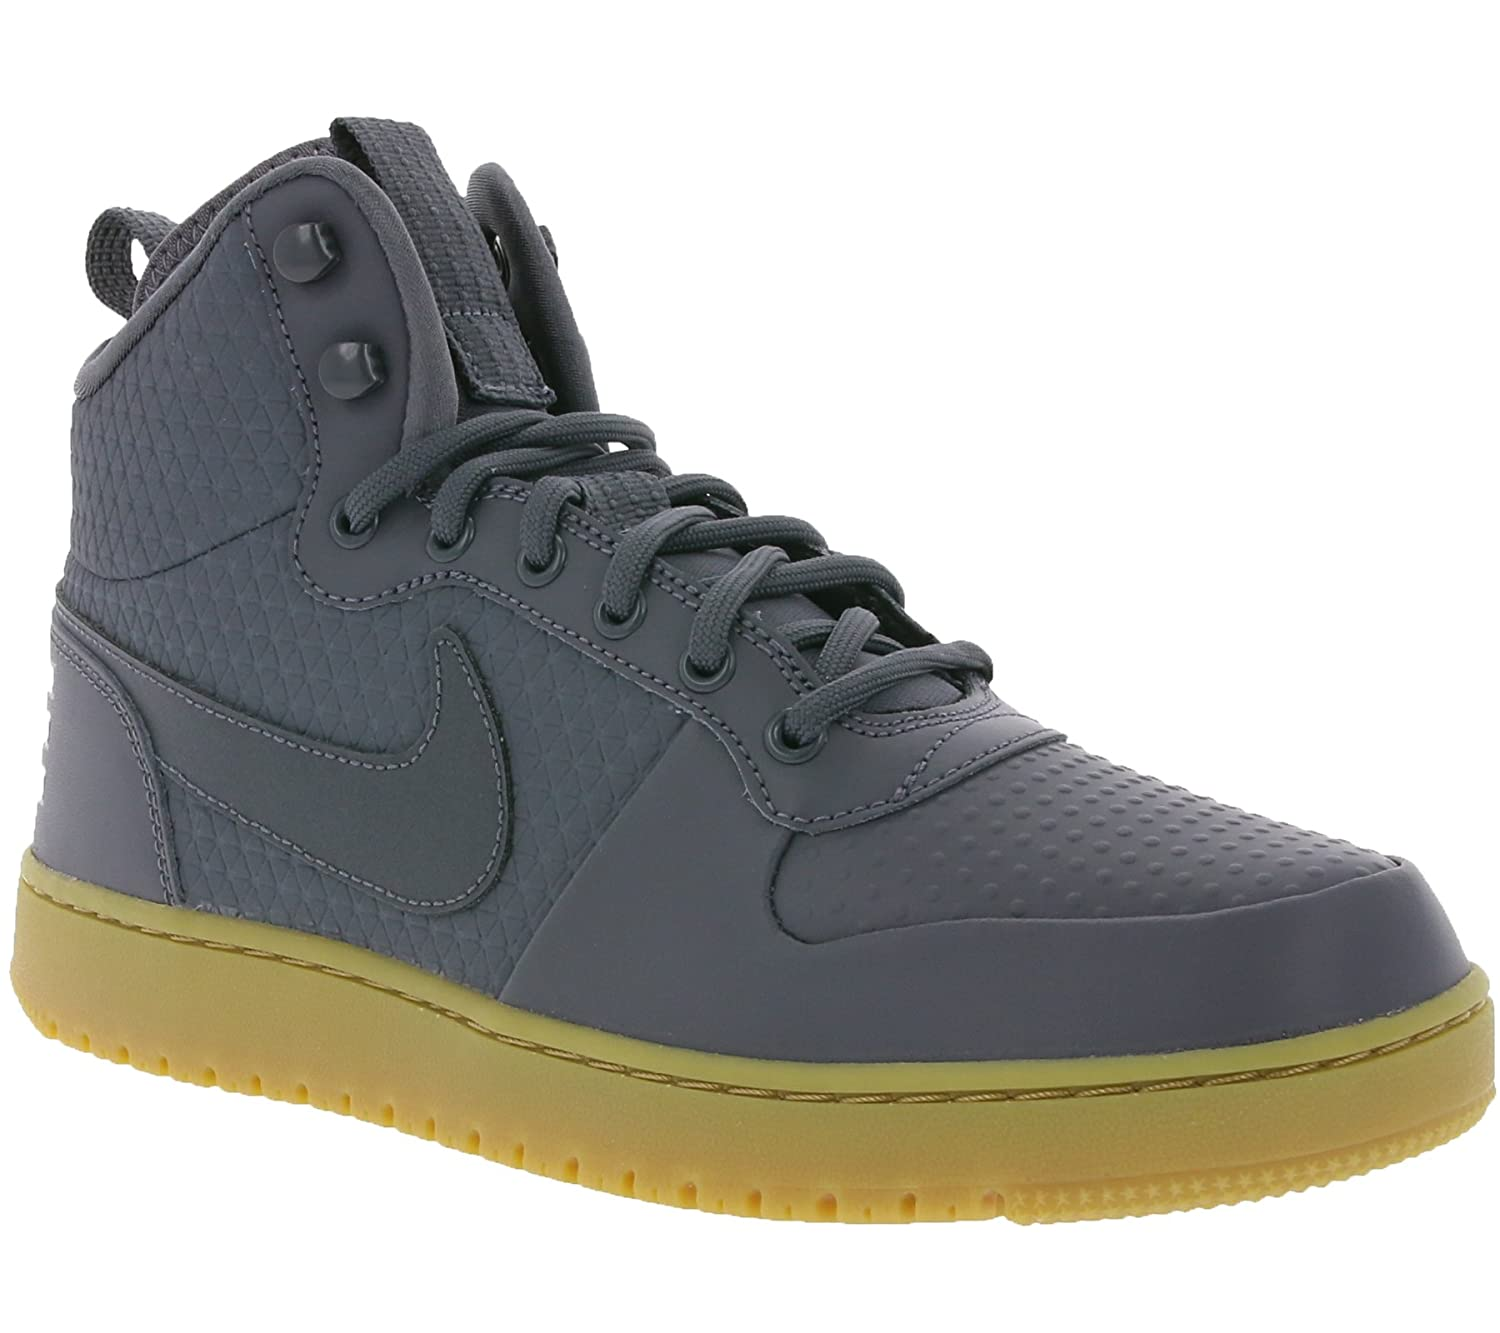 innovative design 8b48e 40e99 Amazon.com   Nike Court Borough Mid Winter Mens Basketball Shoes    Basketball